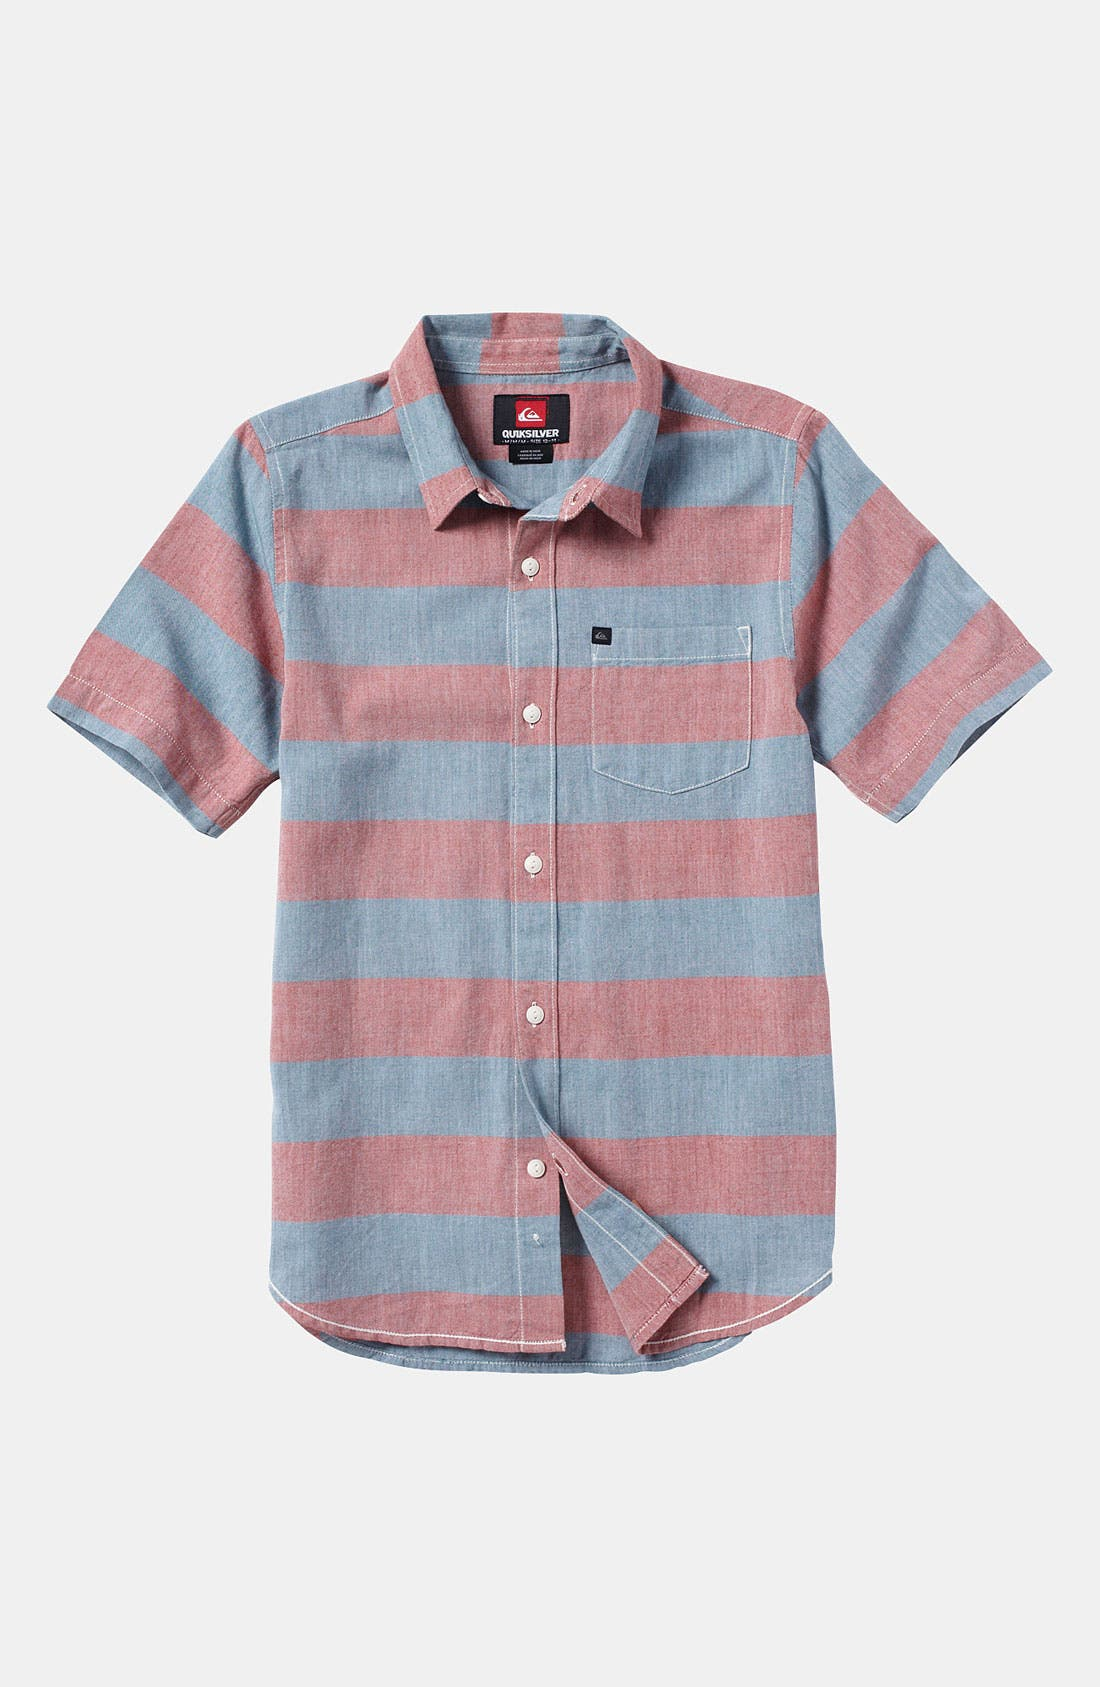 Alternate Image 1 Selected - Quiksilver 'Tube Prison' Woven Shirt (Big Boys)